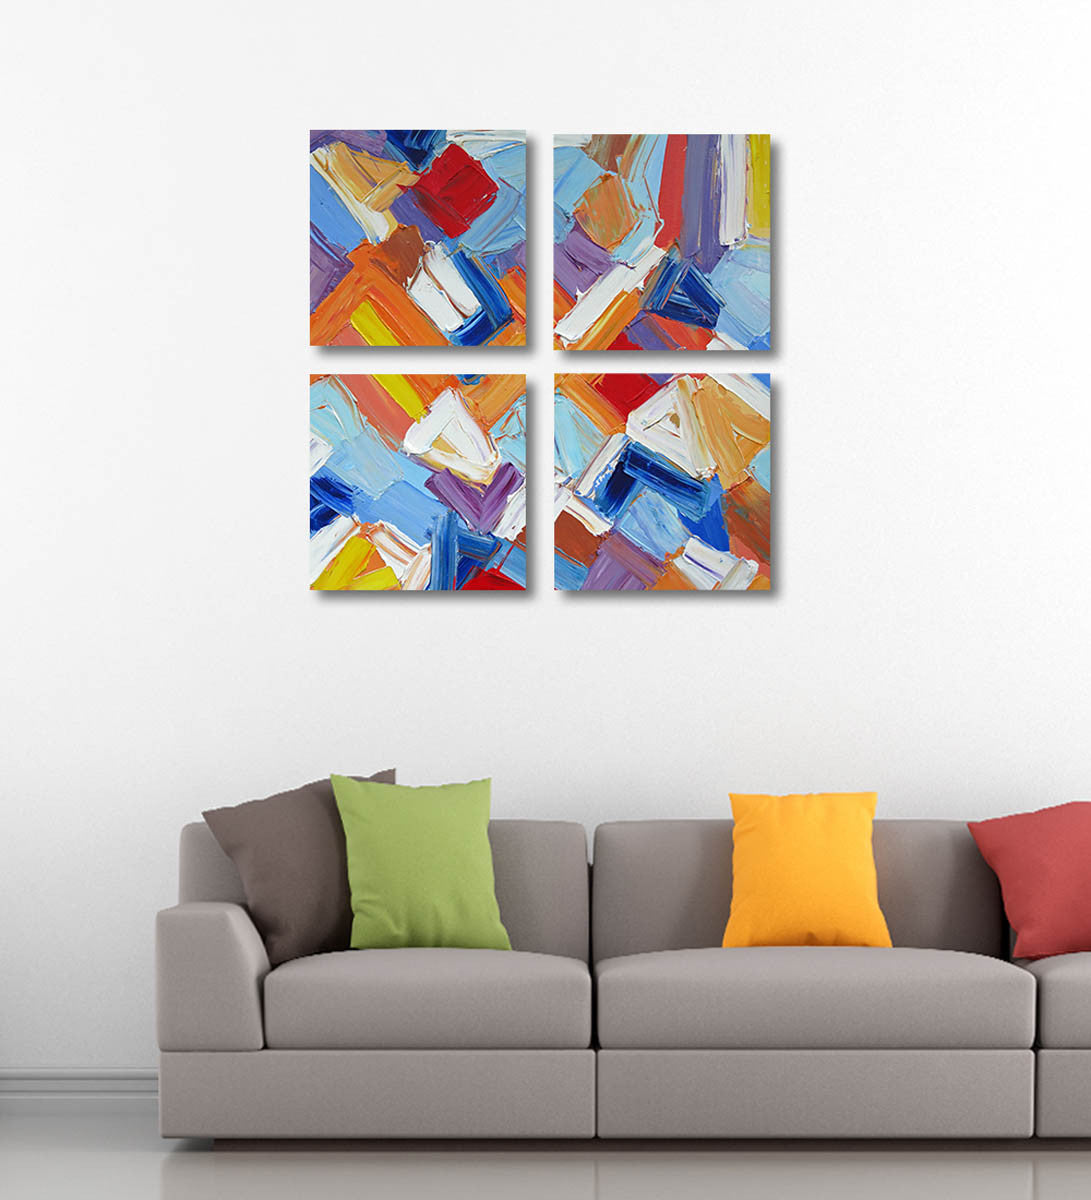 Abstract Painting - Mosaic - Art Panels by James Britto   Buy ...